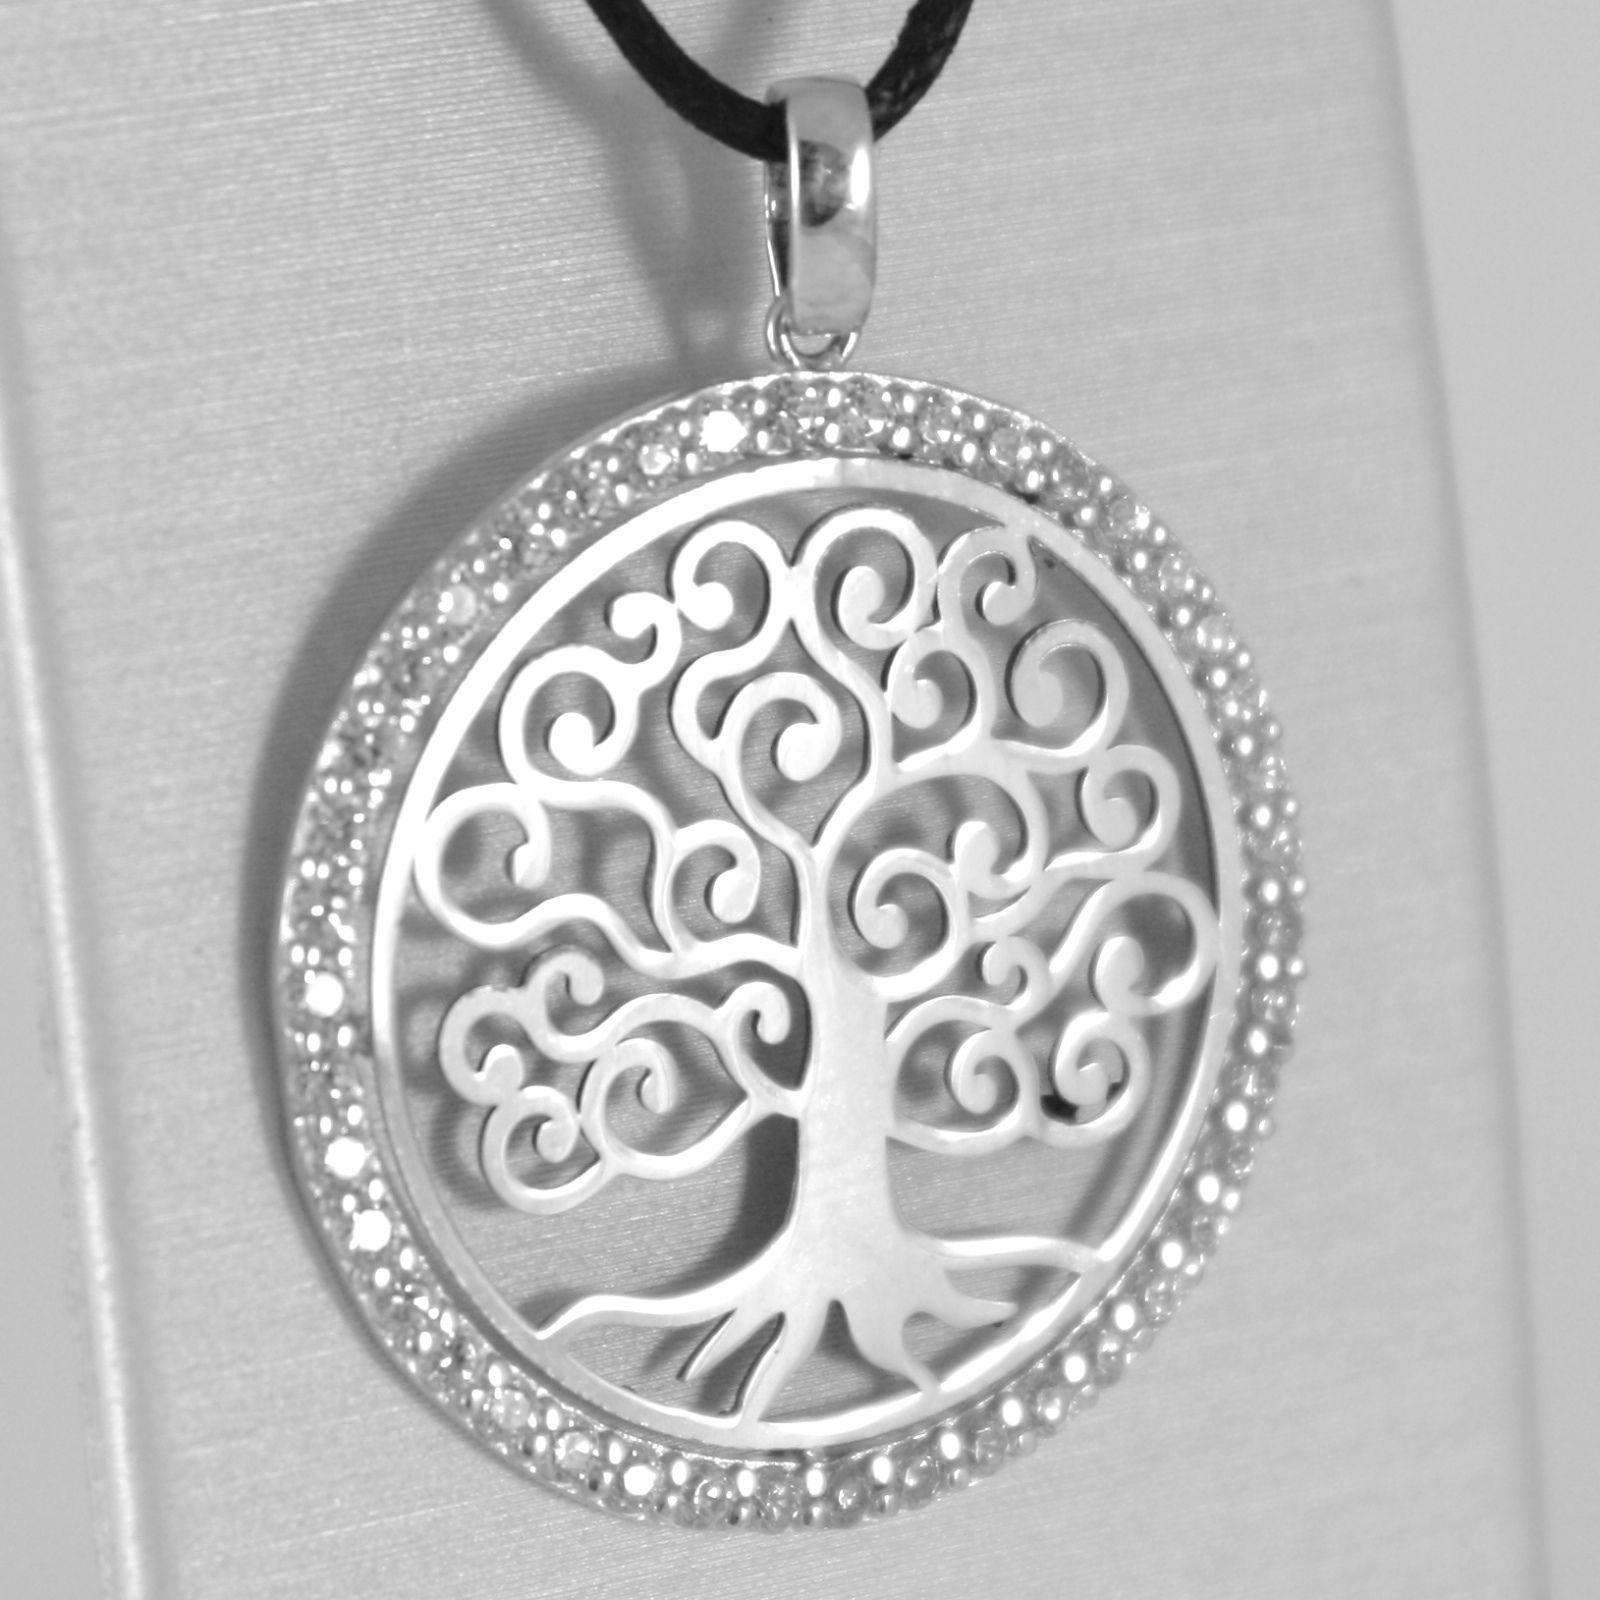 WHITE GOLD PENDANT 750 18K, TREE OF LIFE, FRAME ZIRCON, MADE IN ITALY